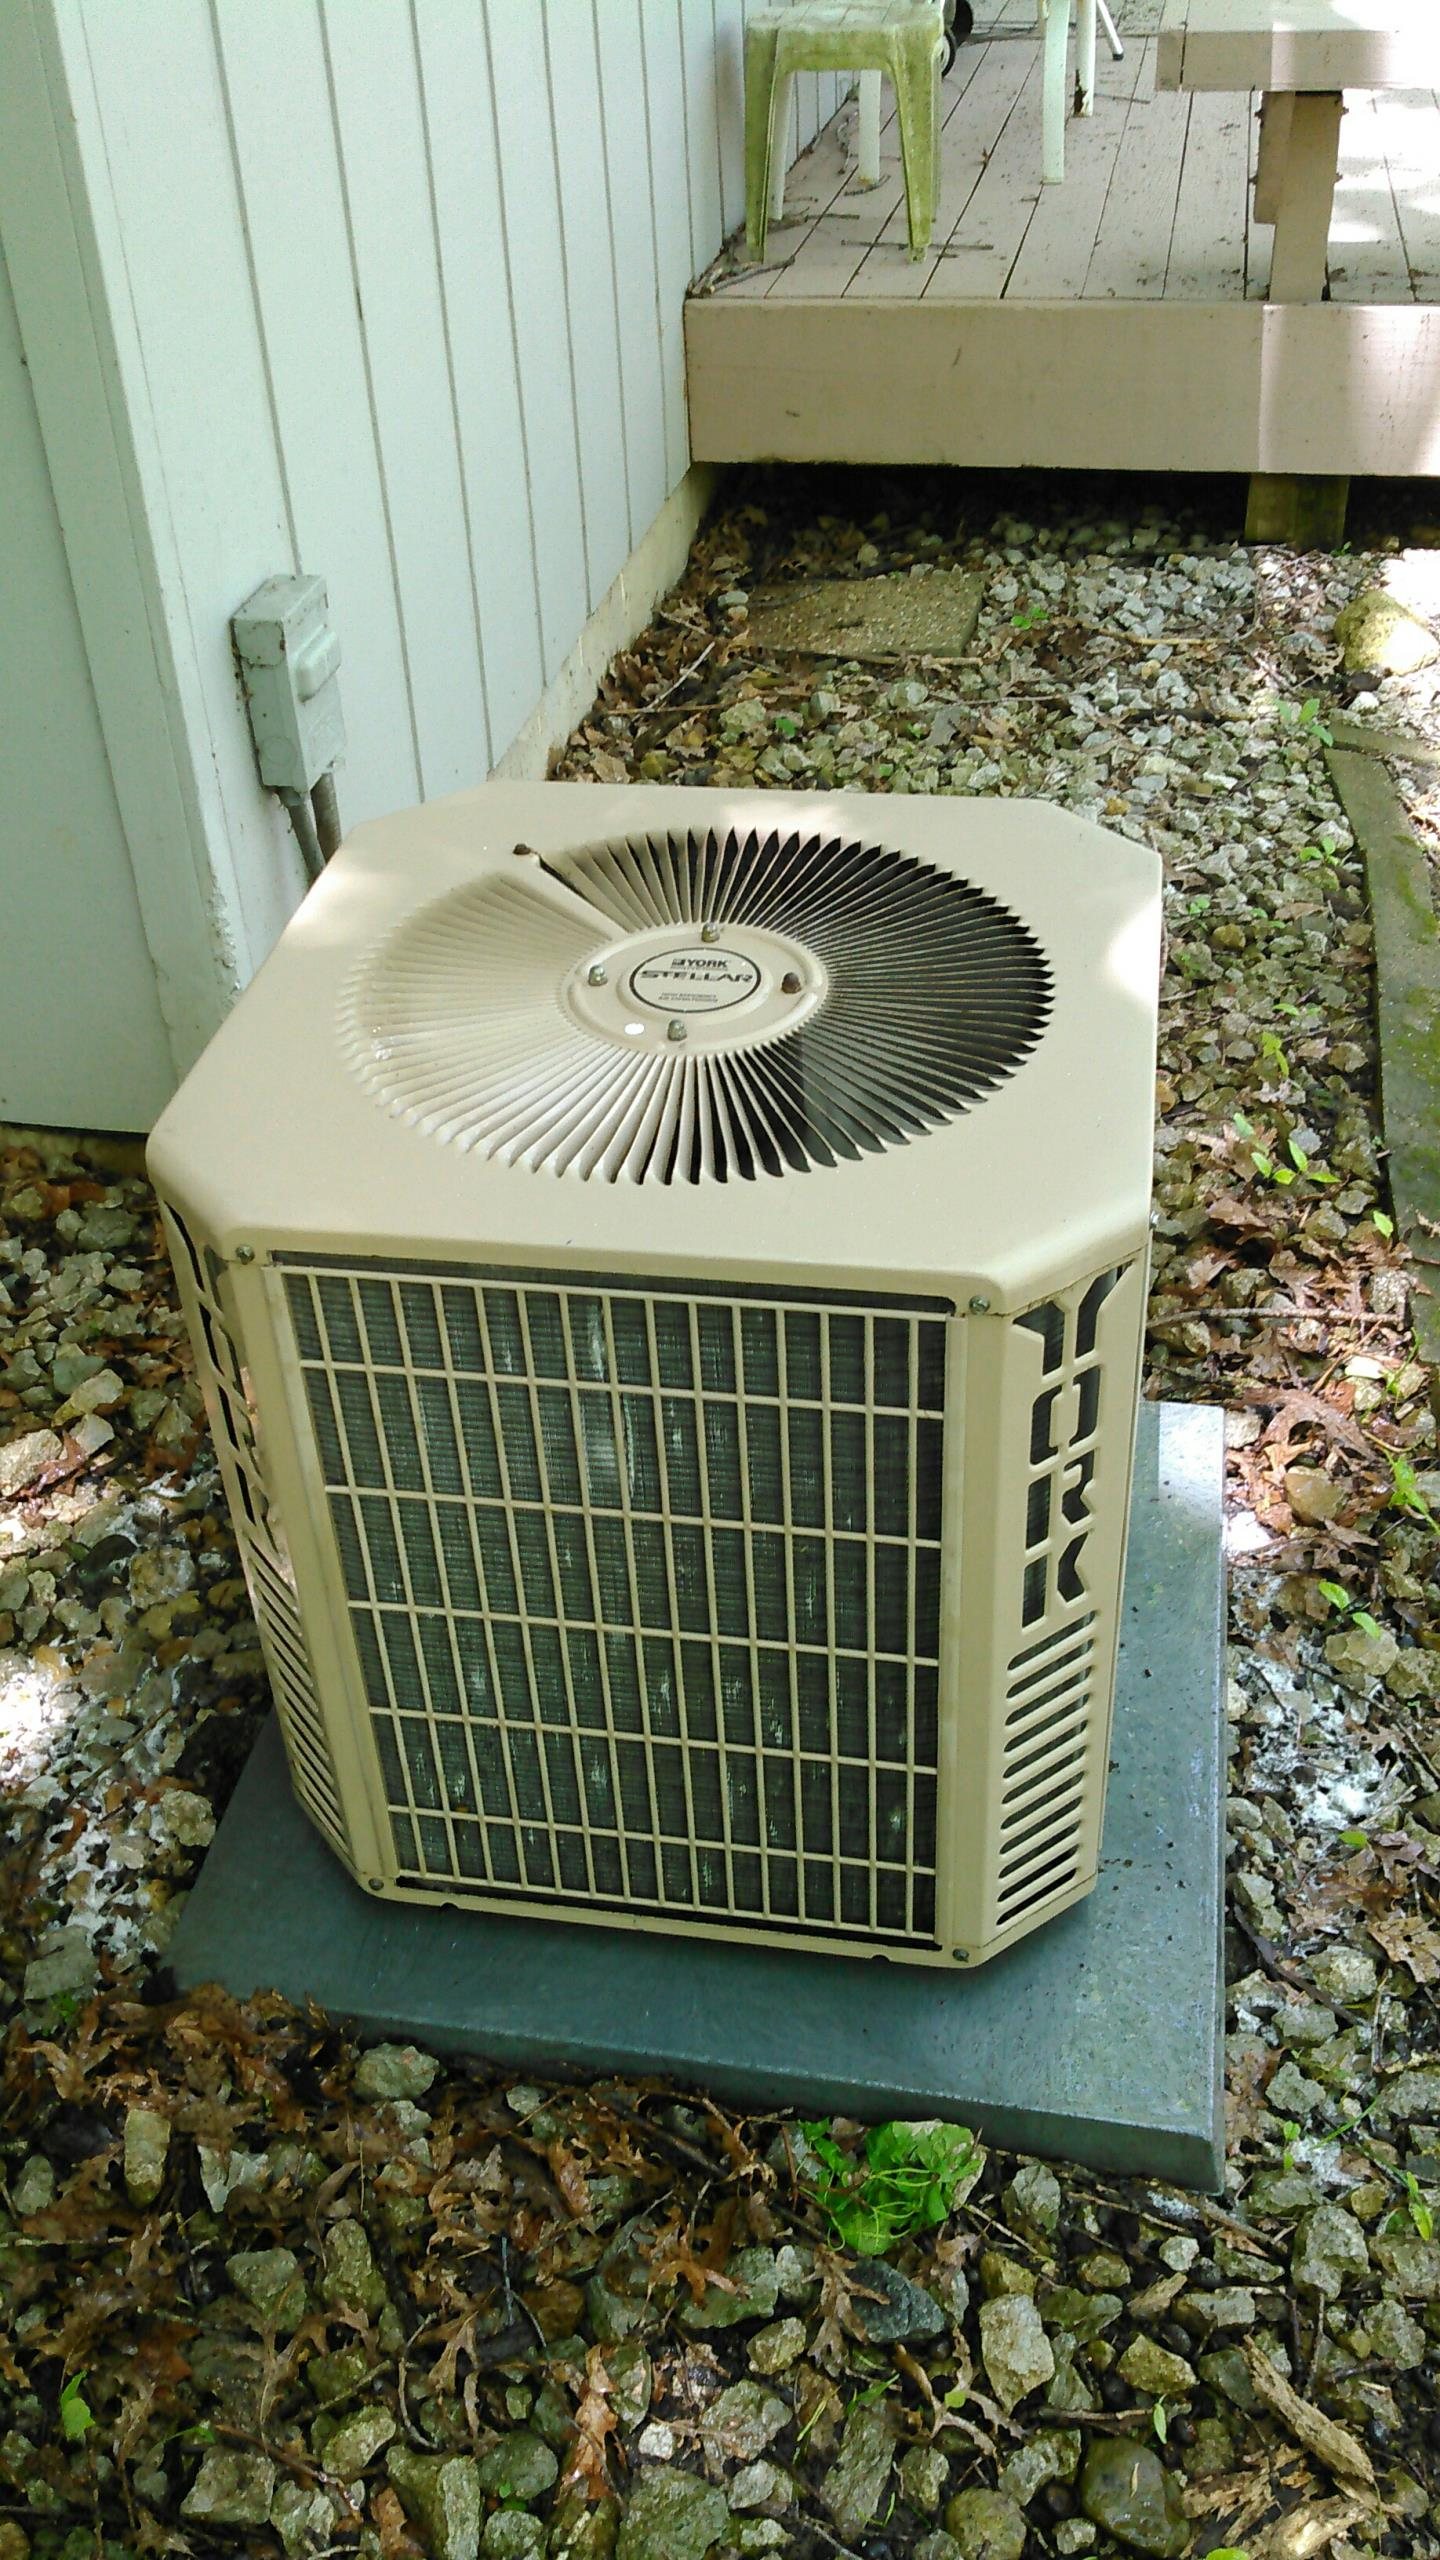 Lexington, IL - TUNE UP ON YORK AIR CONDITIONER